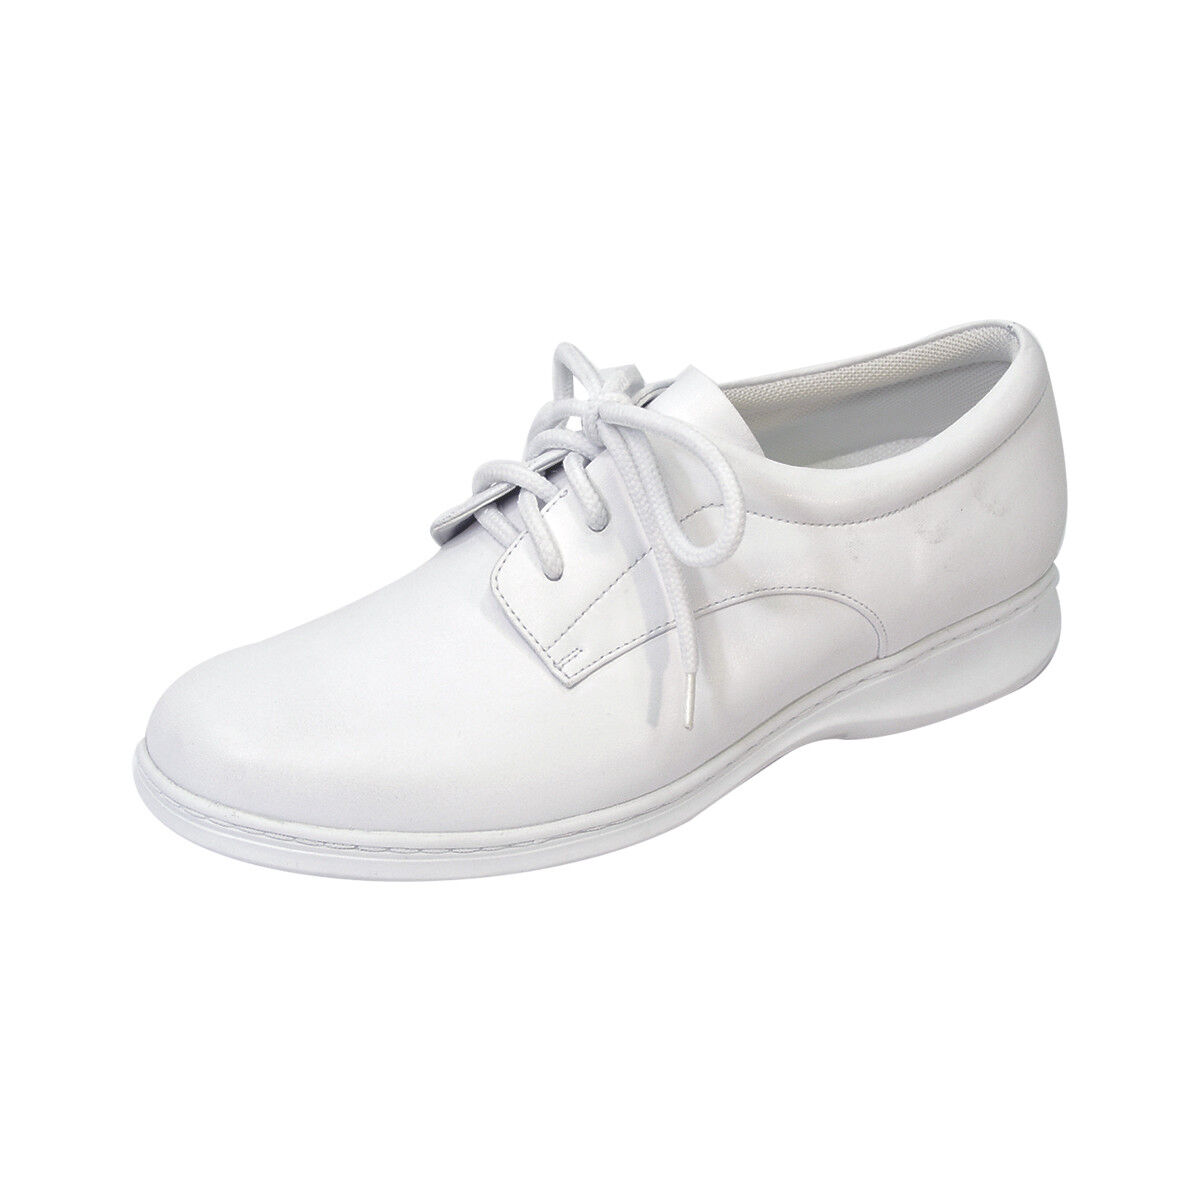 24 HOUR COMFORT Lia Adjustable Wide Width Lace Up shoes